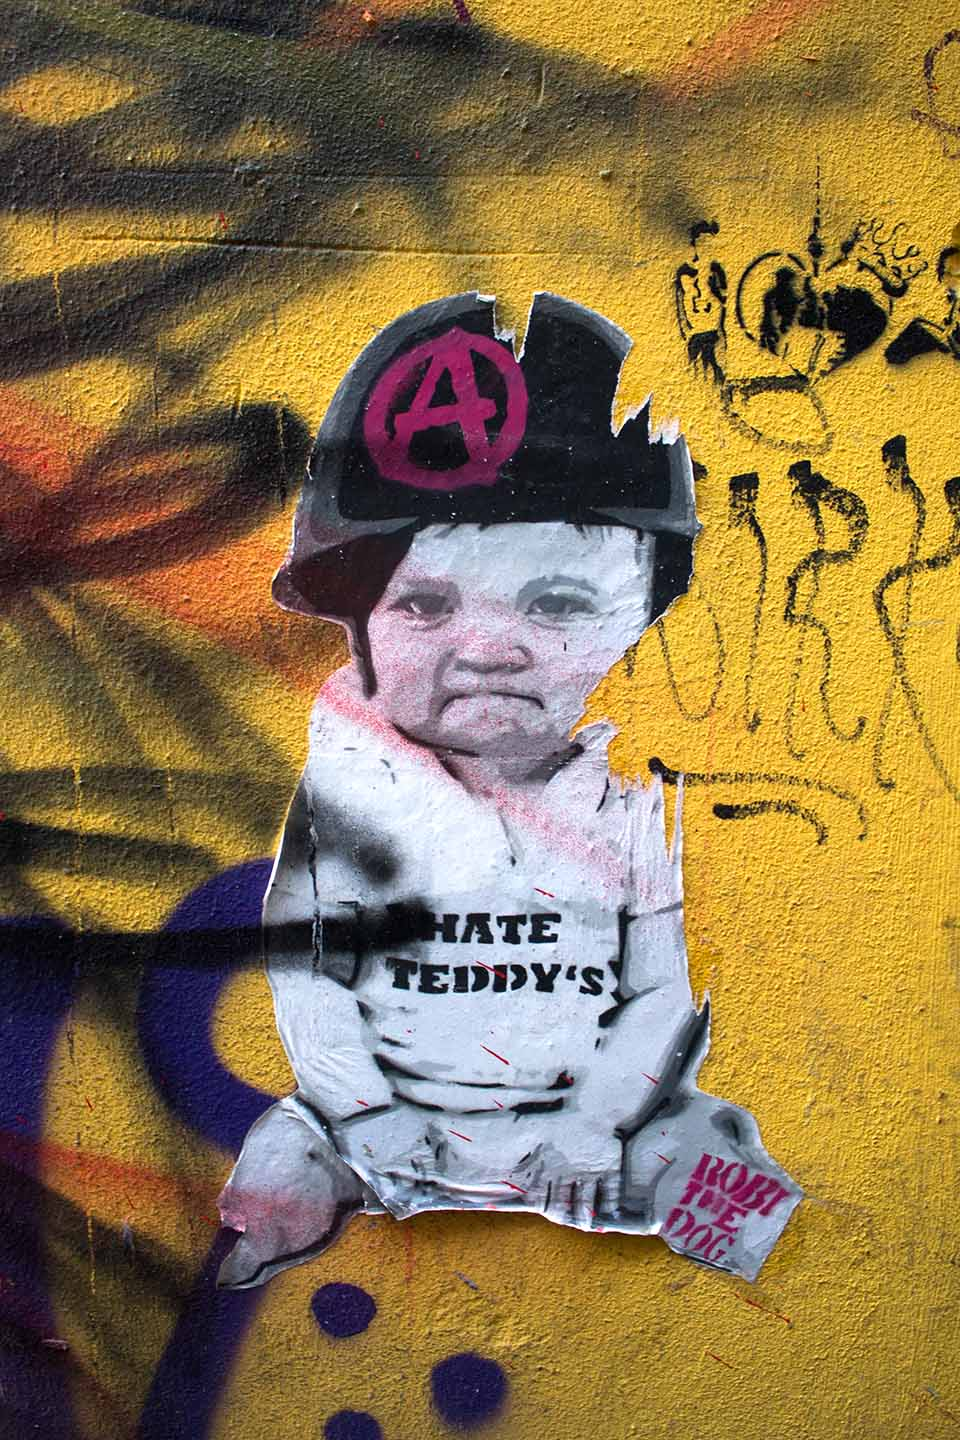 Street Artist Robi the Dig in Berlin: Stencil of a Baby: I hate Teddys